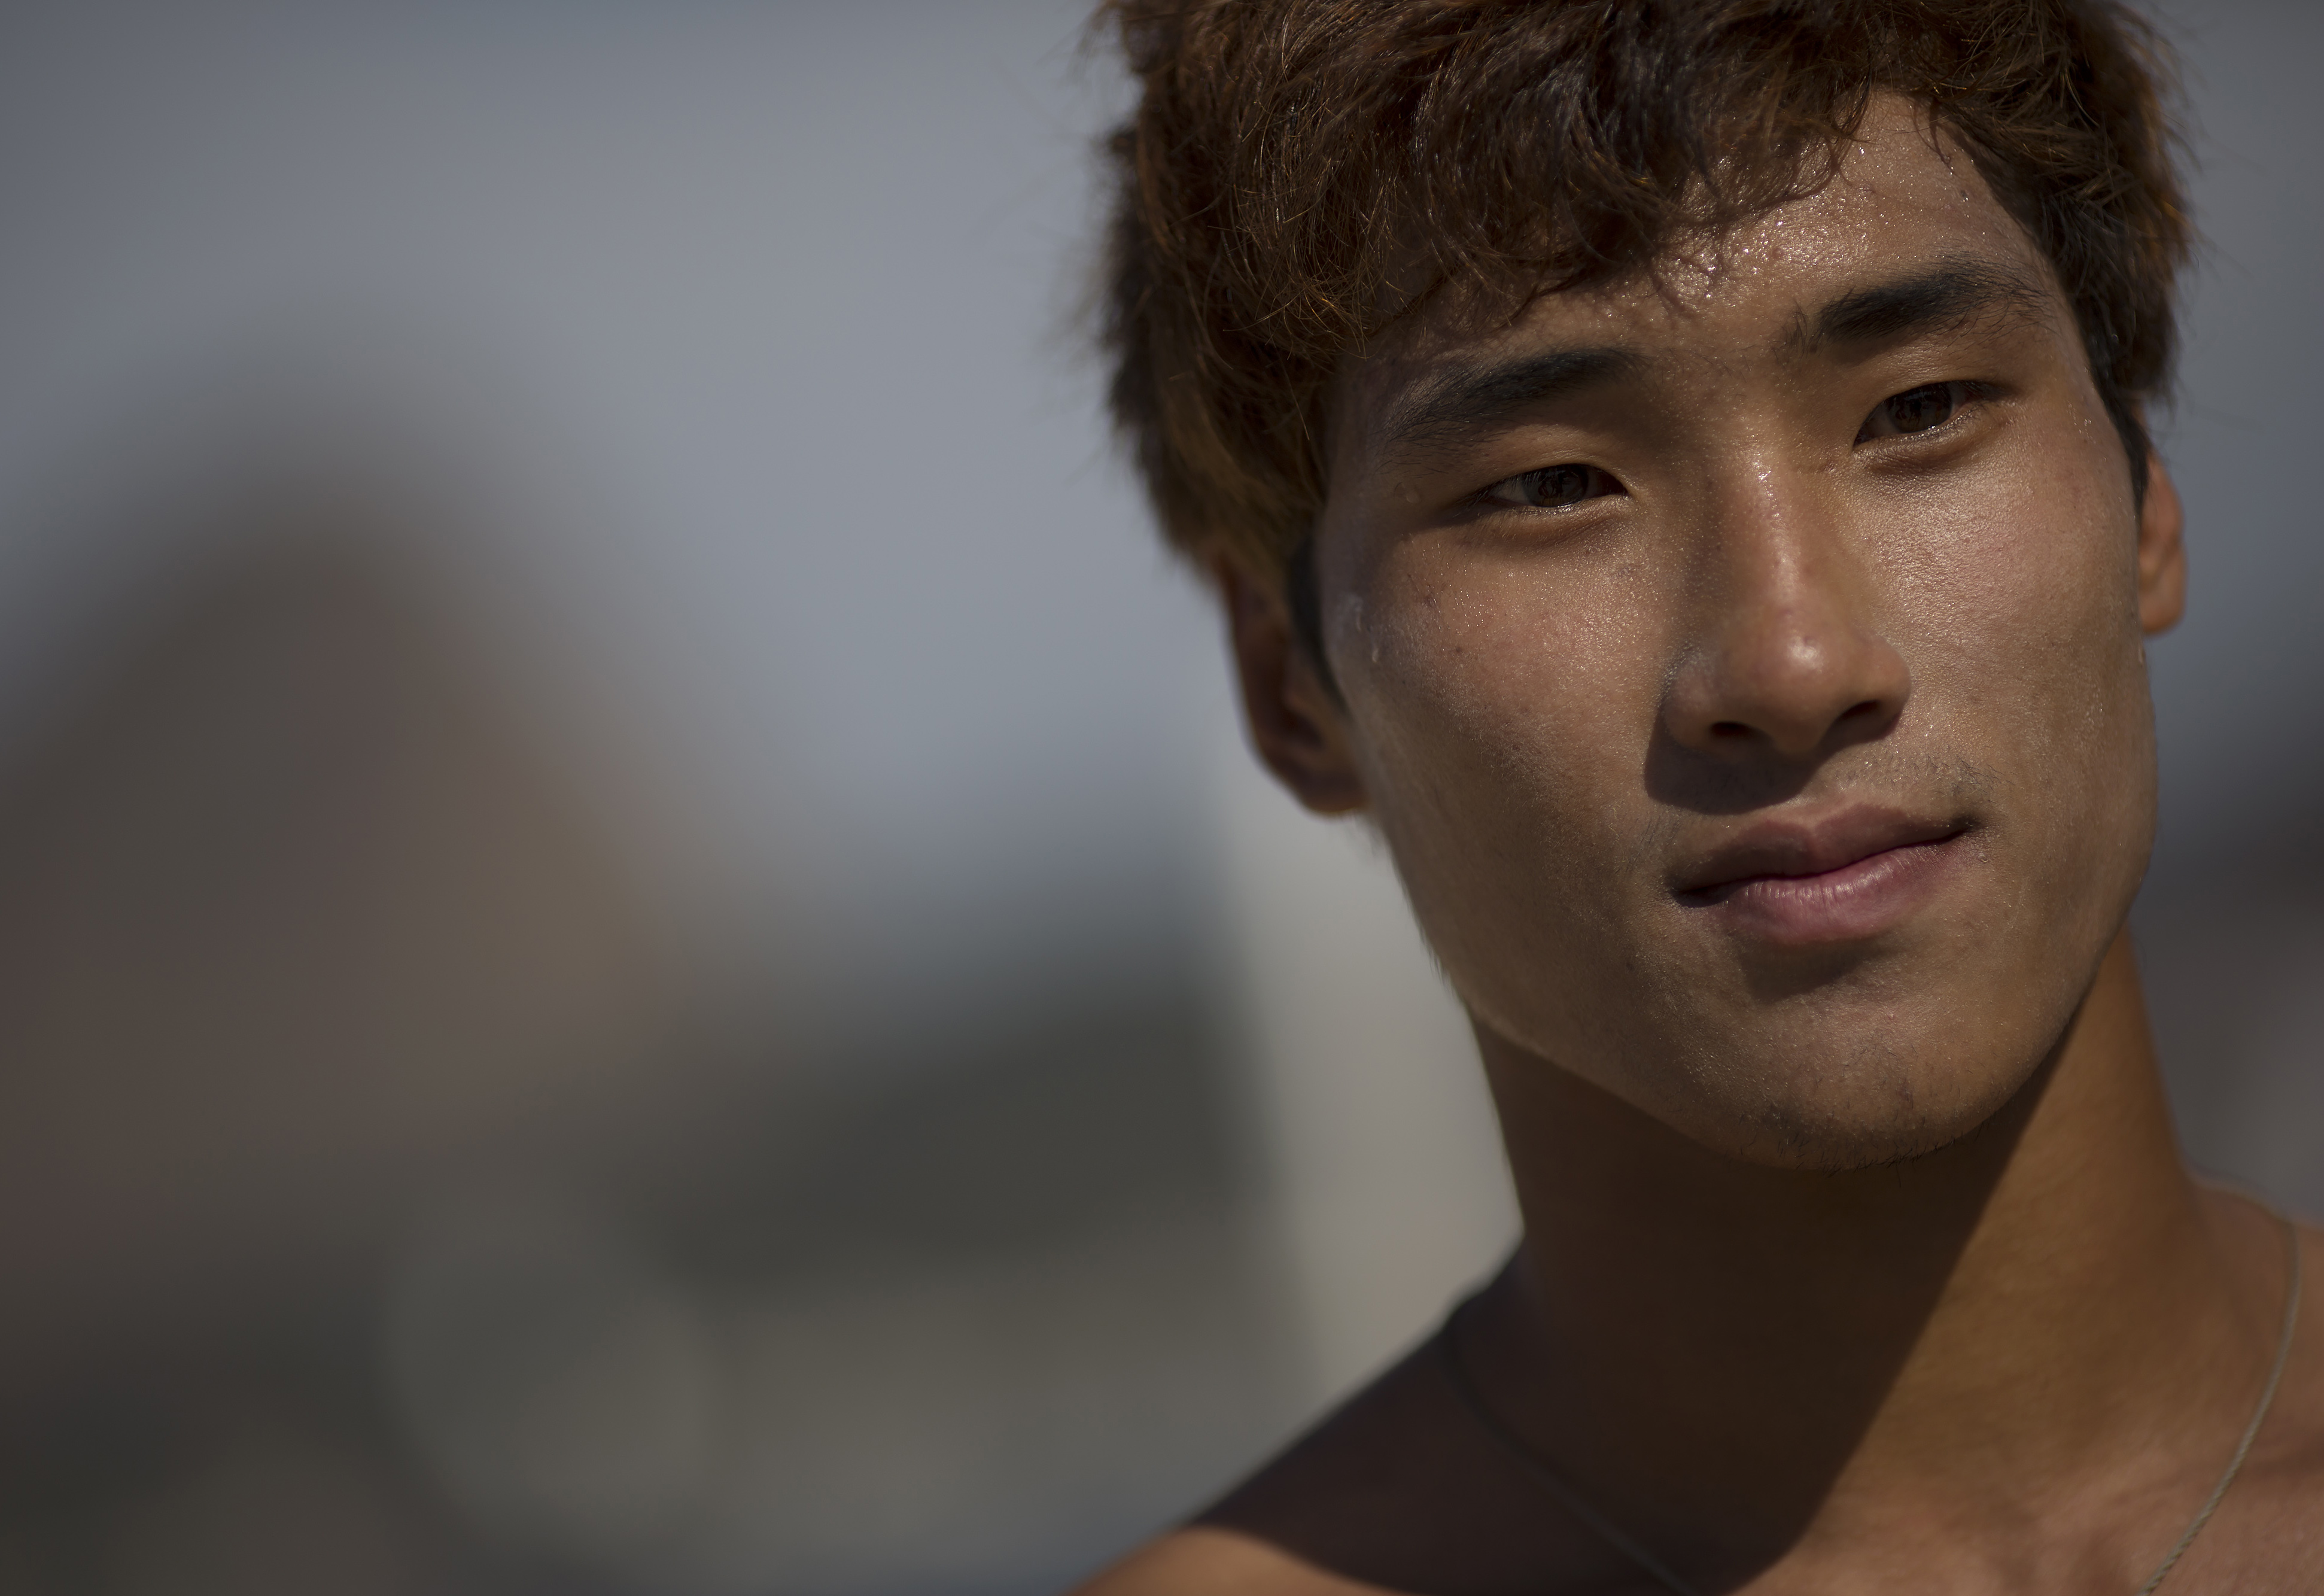 South Korean Wonwoo Cho pauses during an interview after competing during the men's RS:X Windsurfer test event, ahead of the Rio 2016 Olympic Games, in Guanabara Bay, Rio de Janeiro, Brazil, Wednesday, Aug. 19, 2015. Wonwoo Cho is one of four athletes to